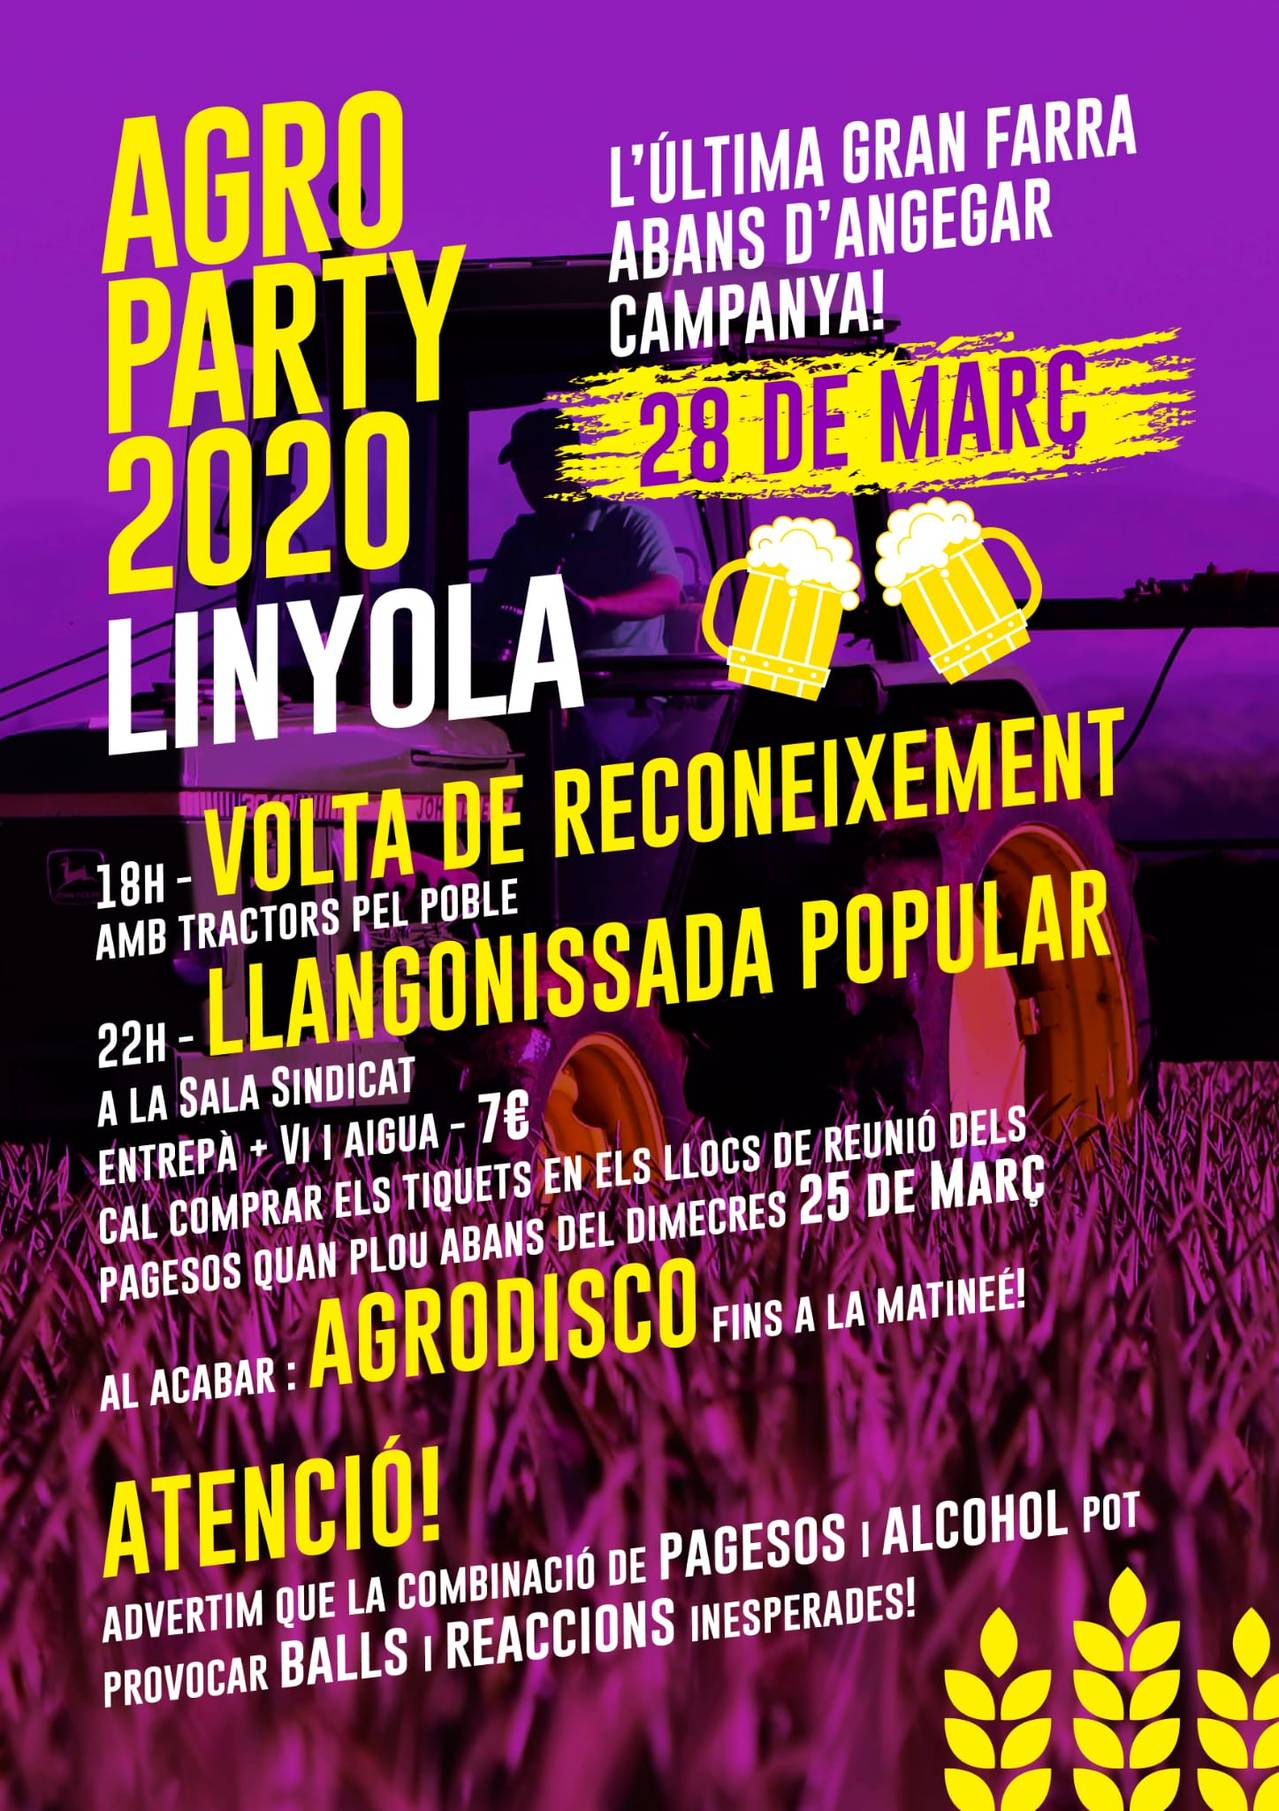 AGRO PARTY 2020 LINYOLA